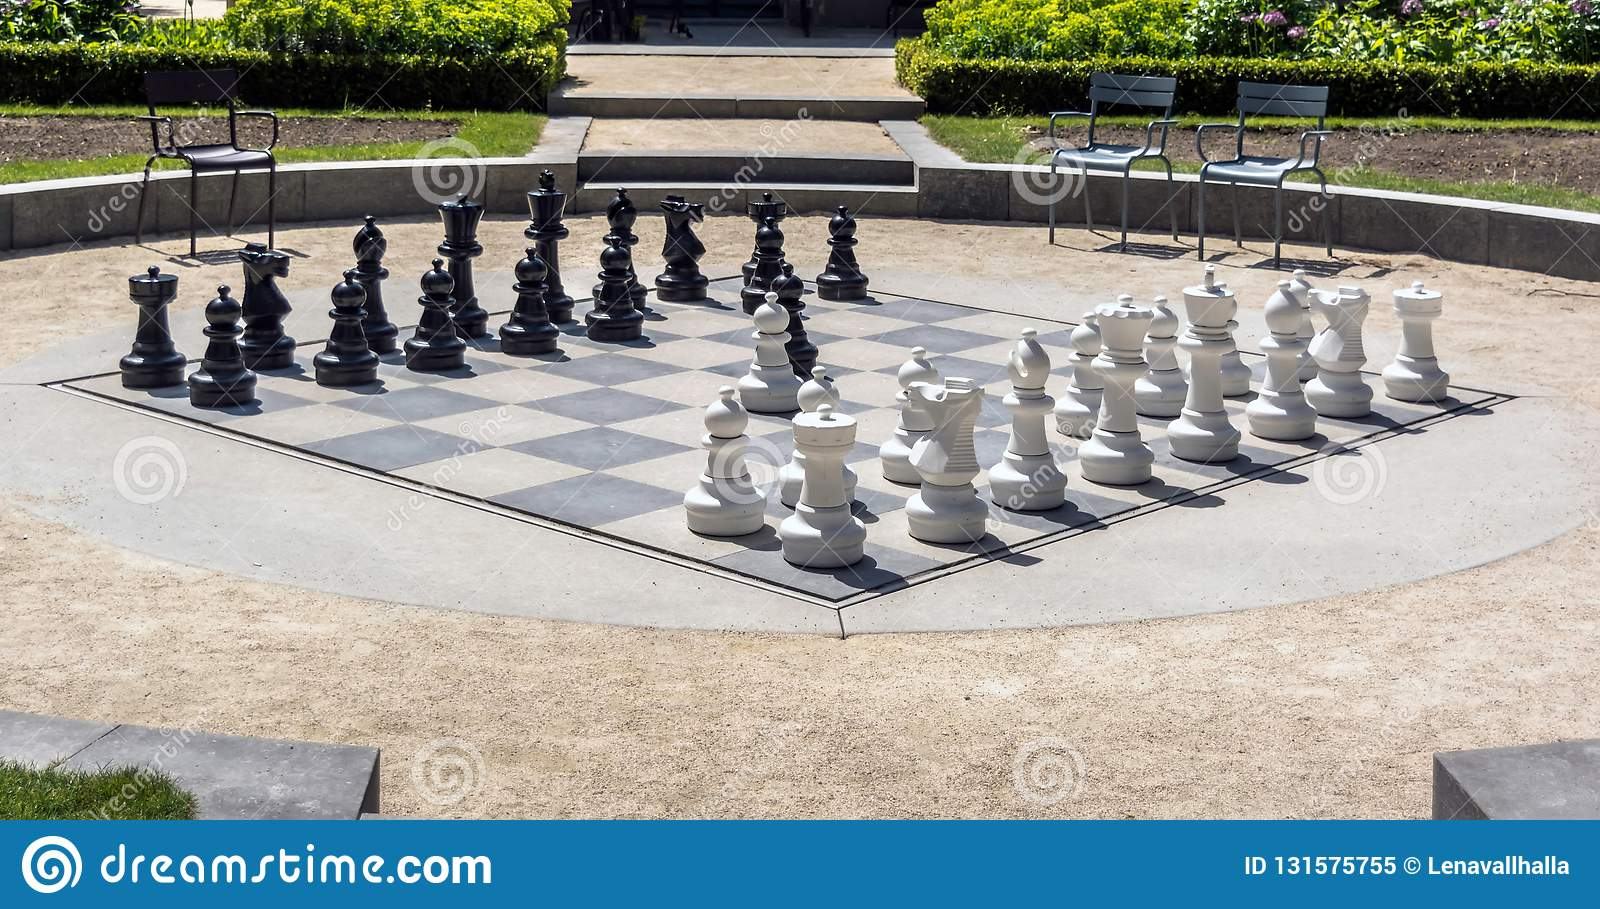 Giant chess board in the Rijksmuseum National Museum gardens